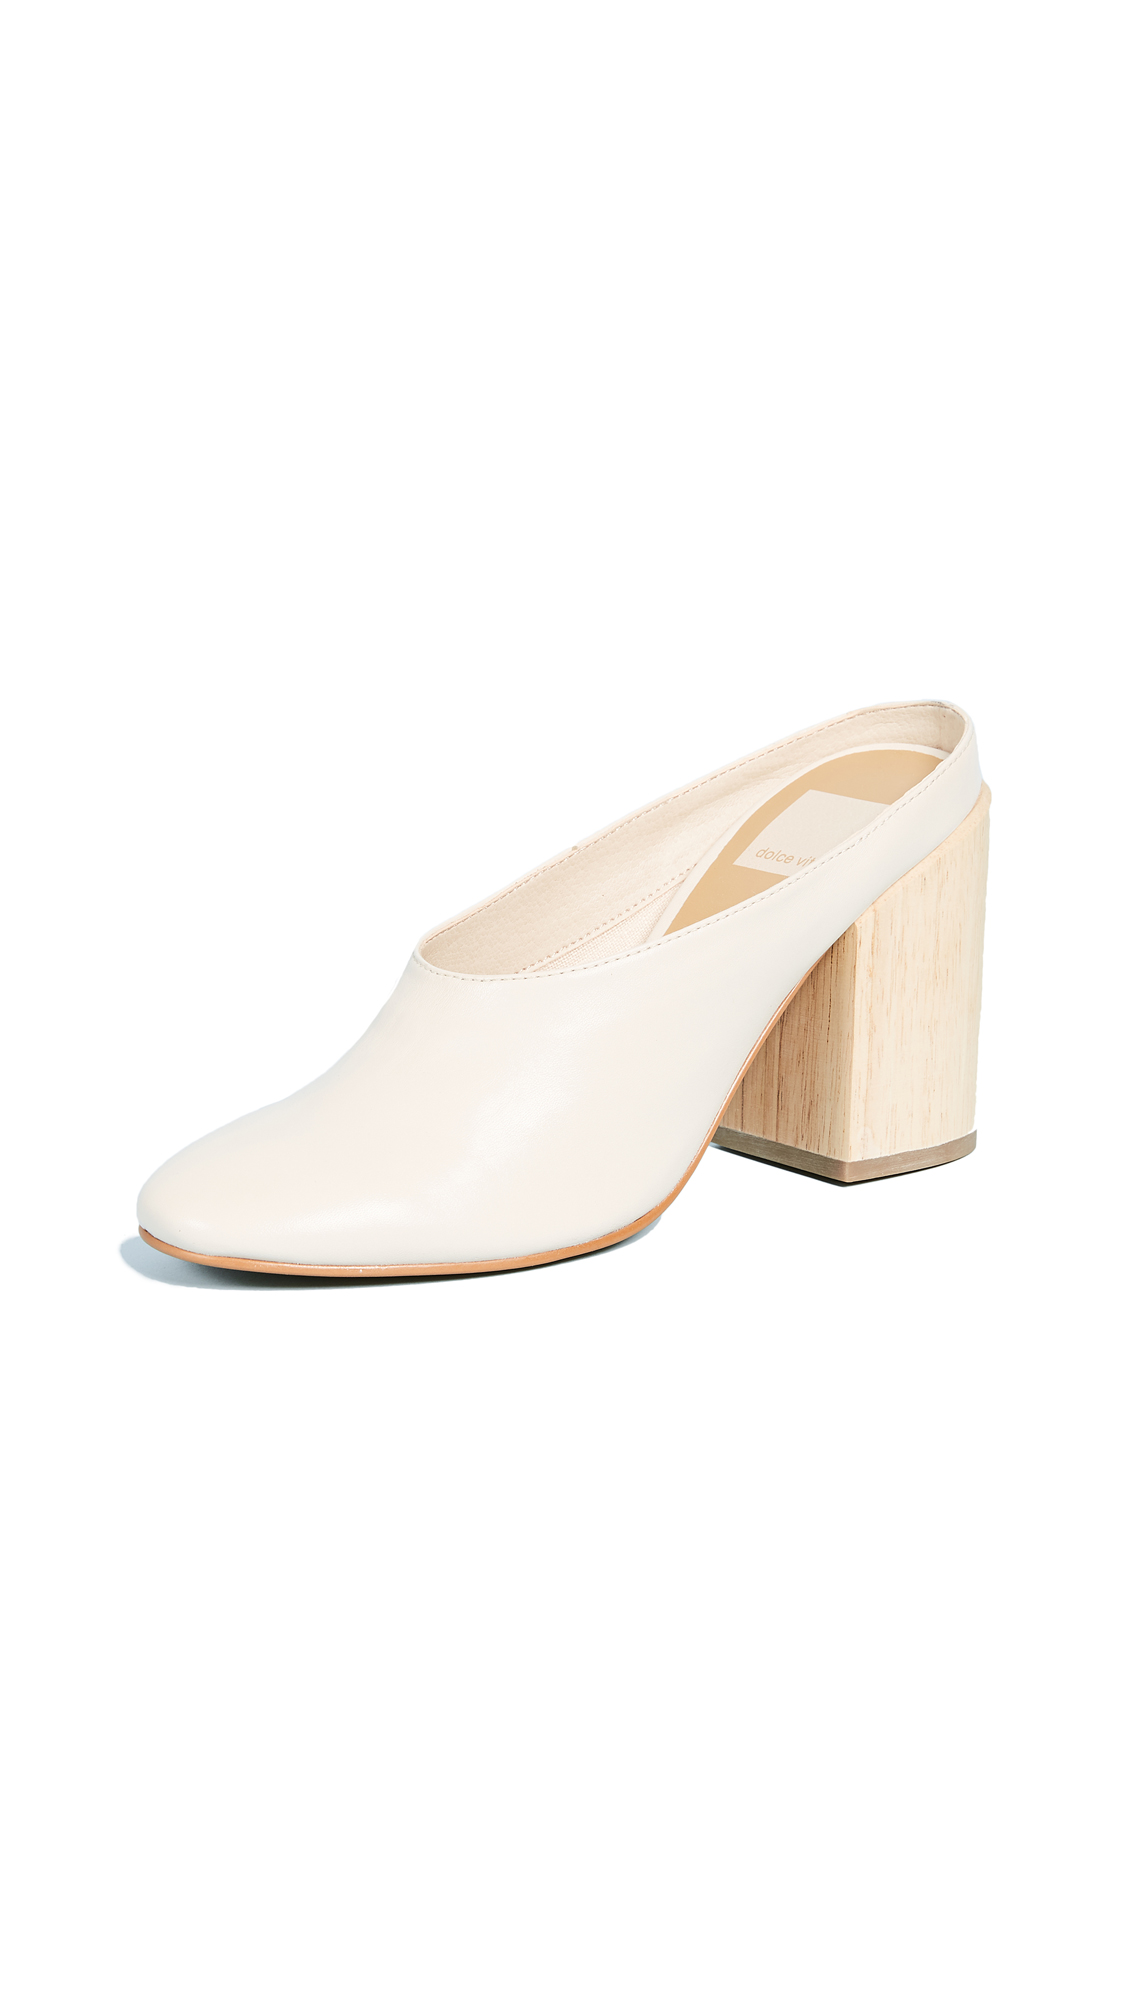 Dolce Vita Caley Mules - Ivory